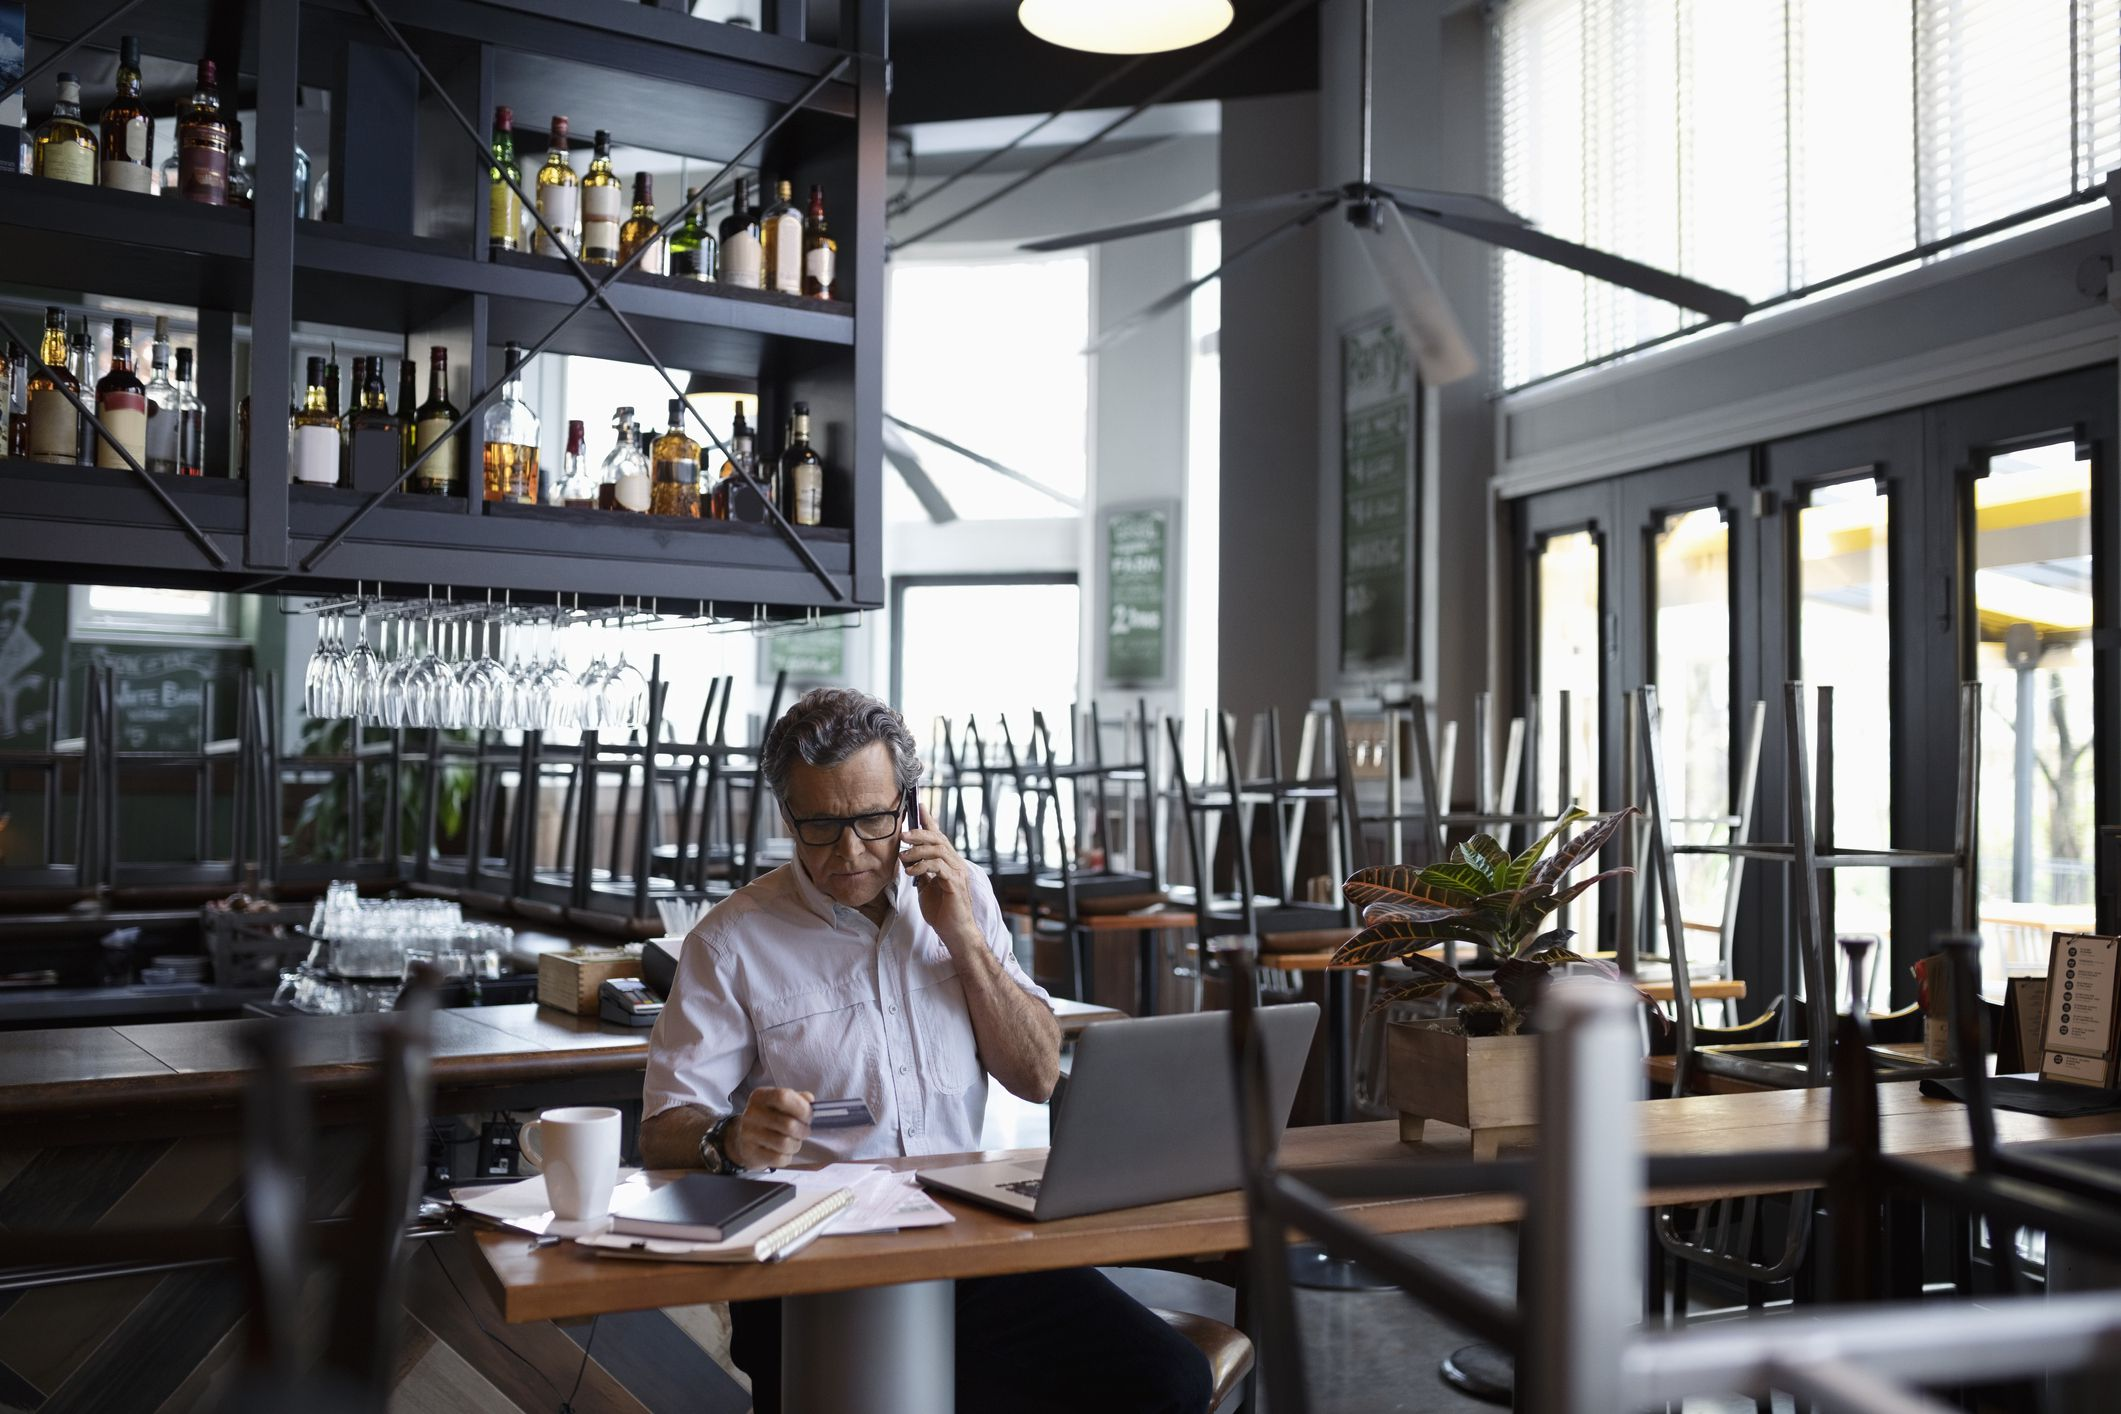 Types of Insurance You Need For Your Restaurant